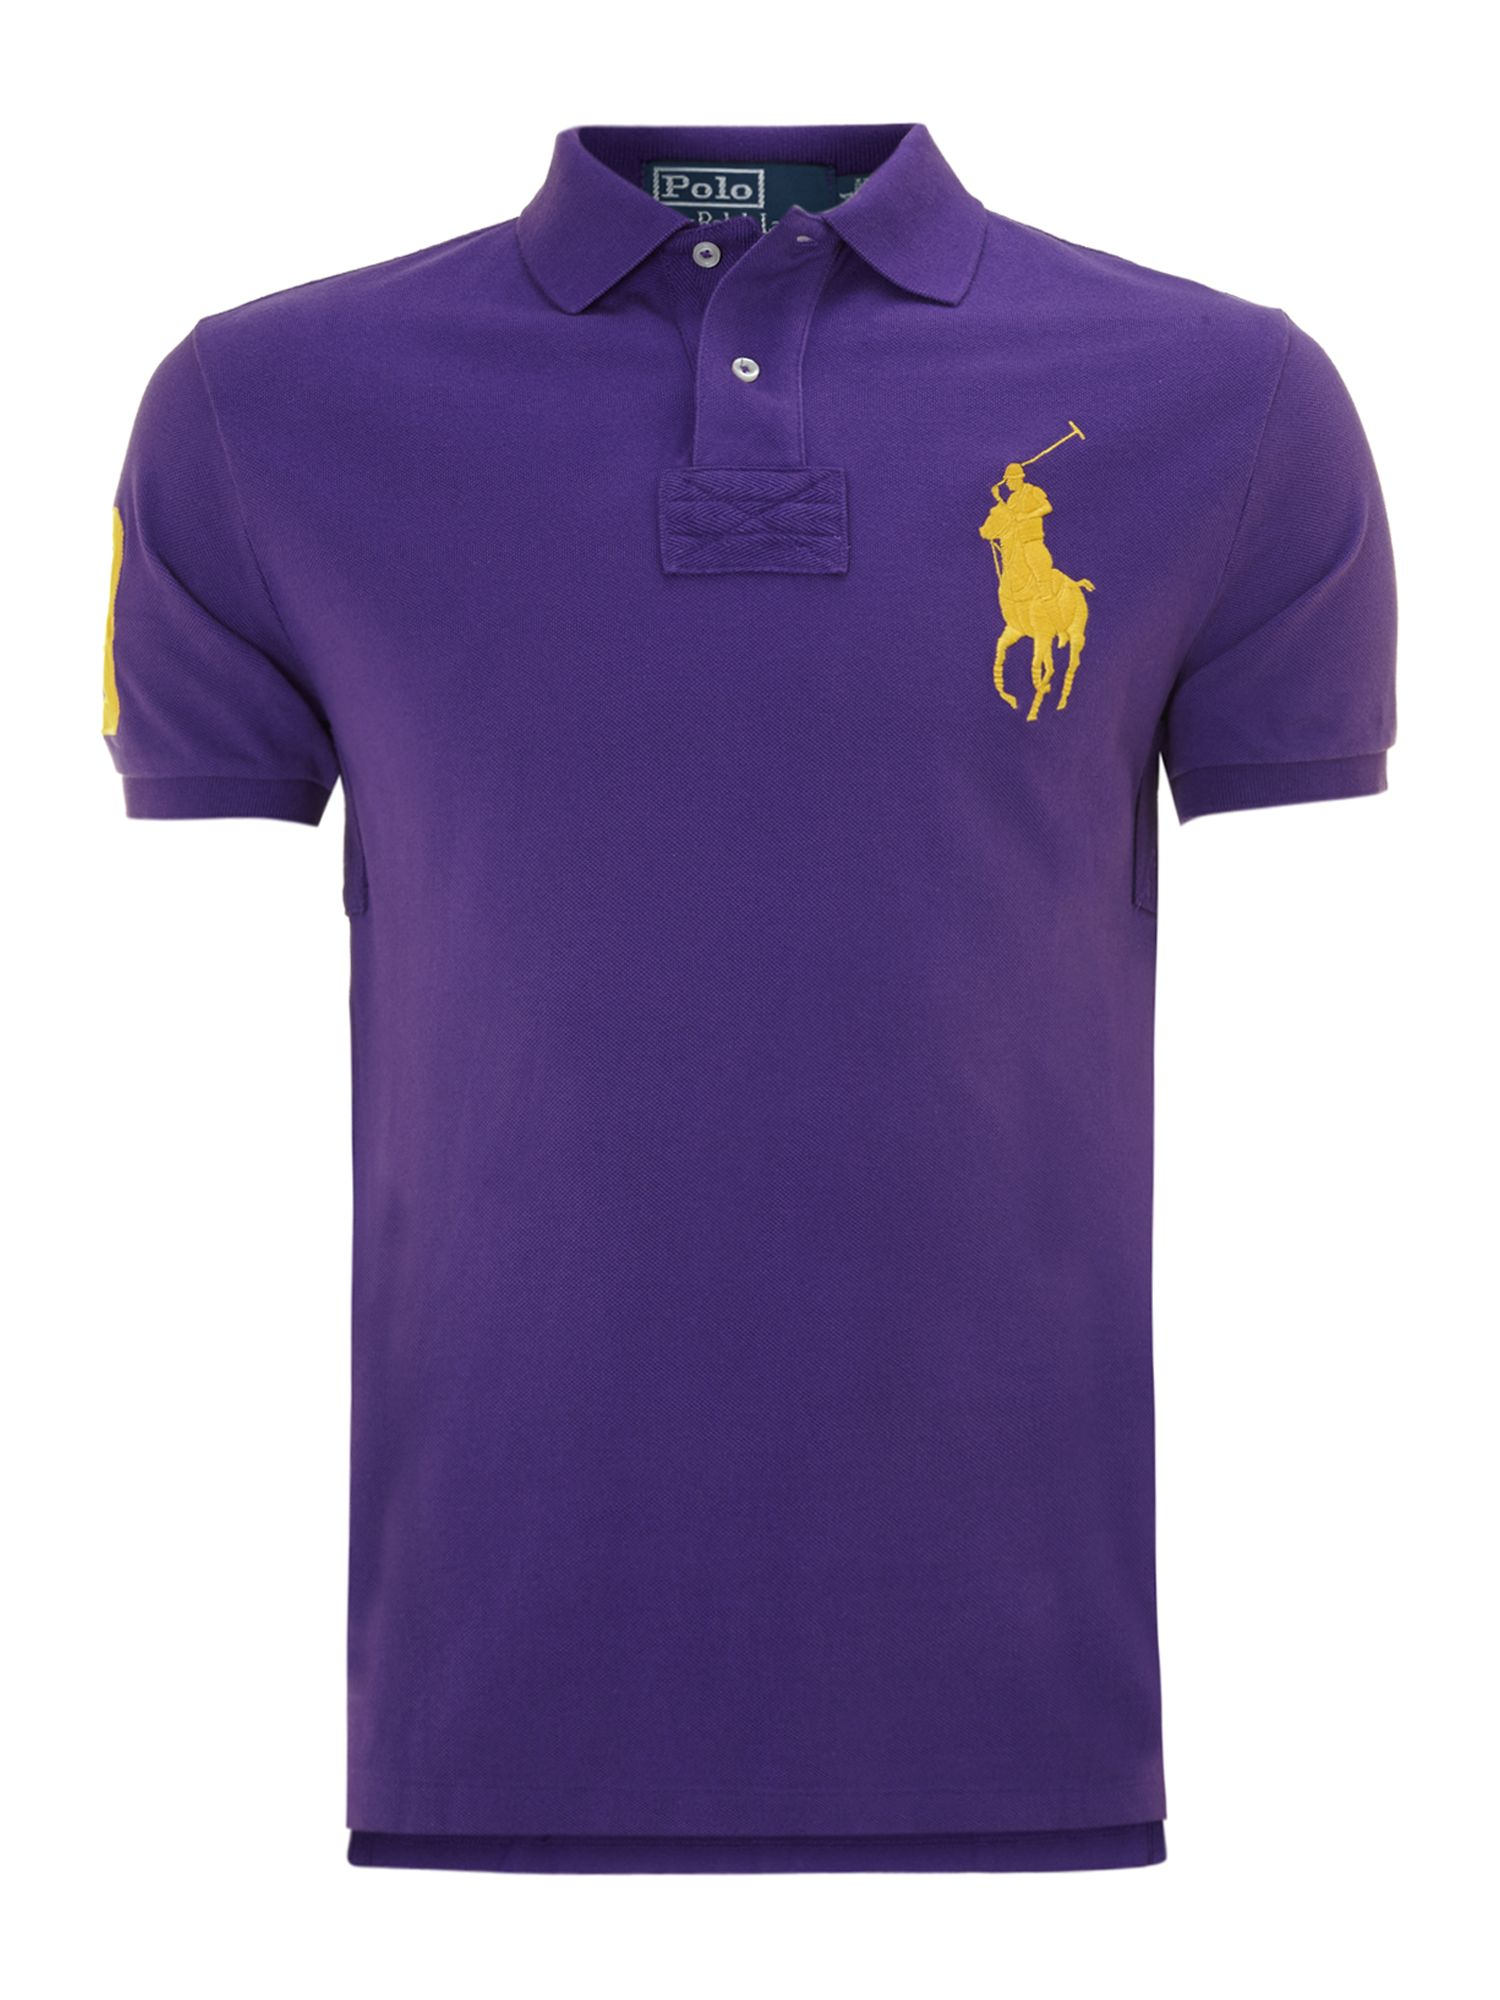 Large pony slim fit polo